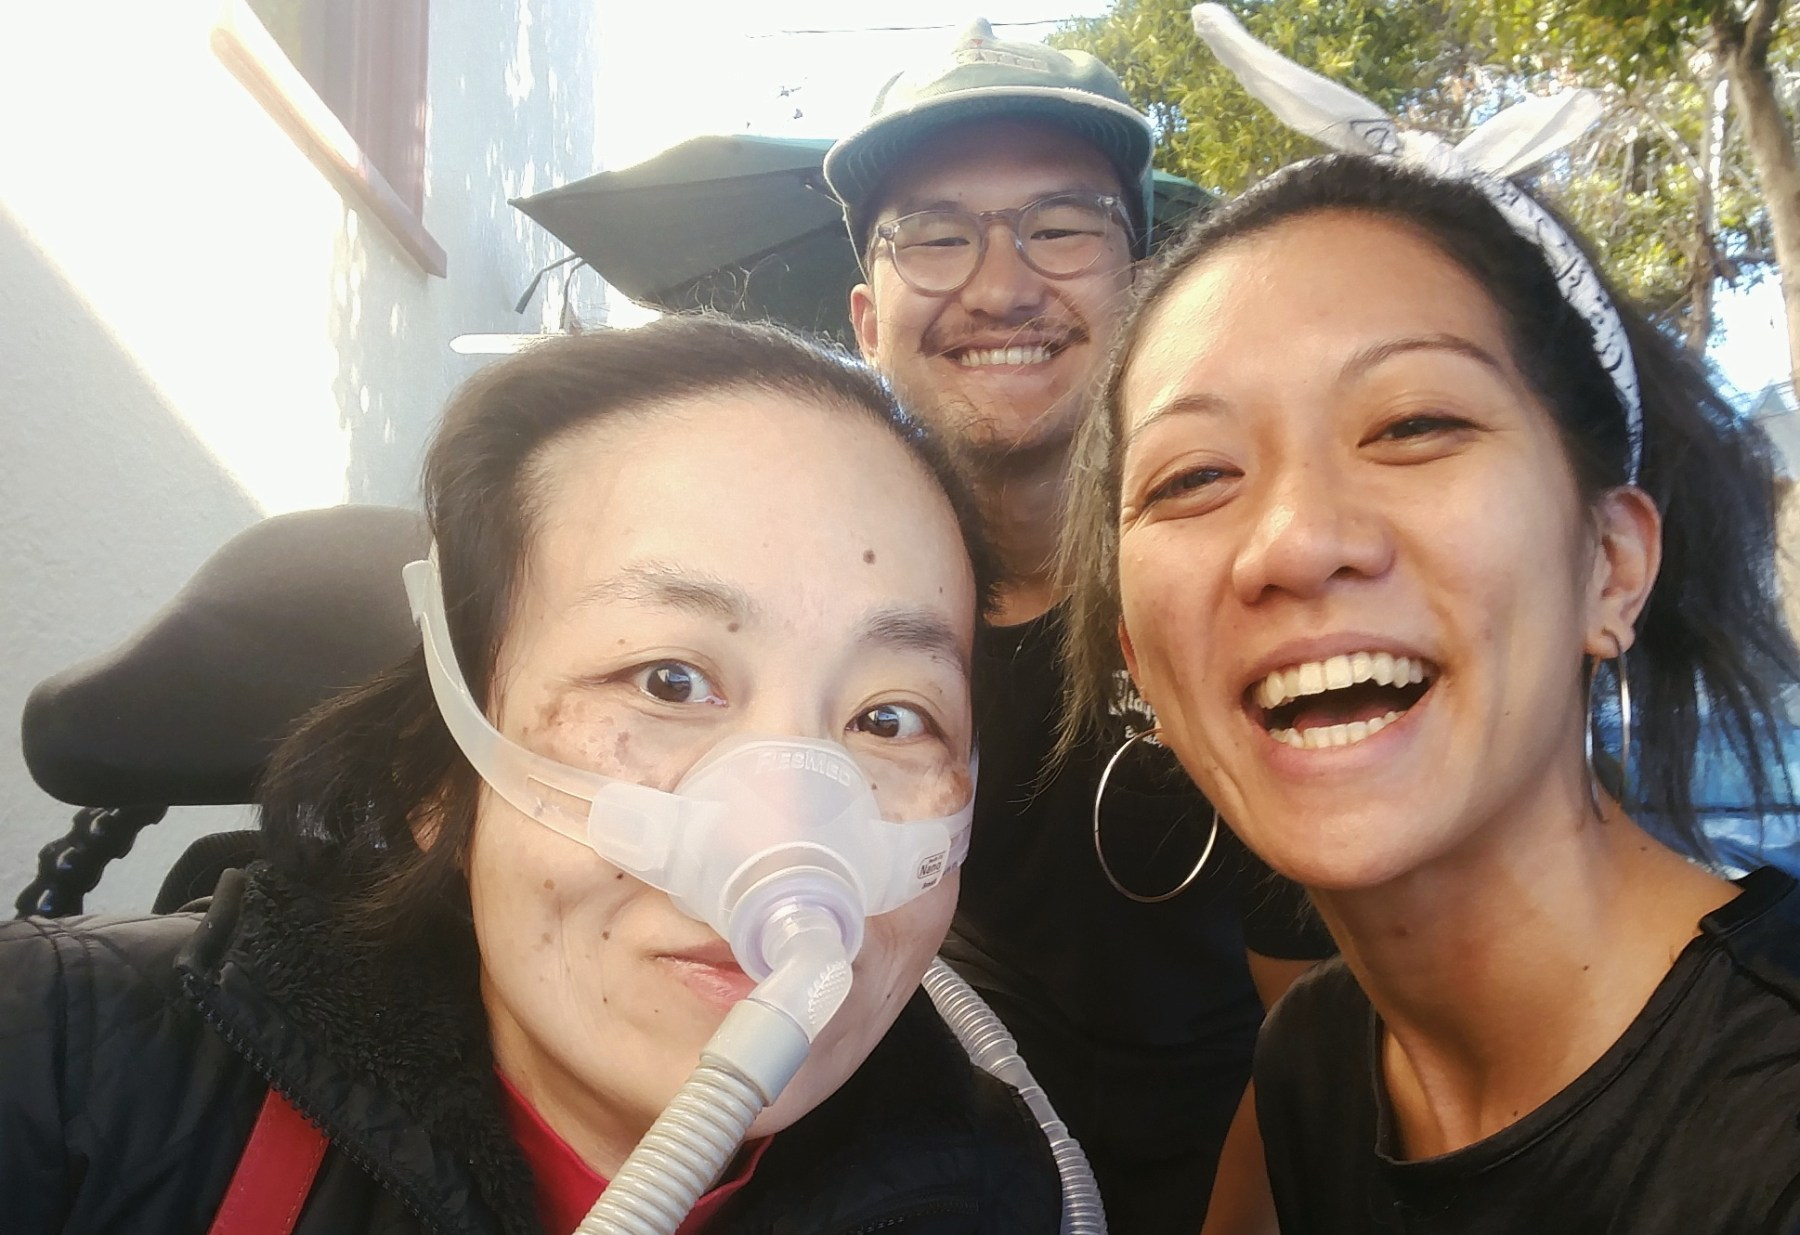 Three Asian Americans taking a selfie at an outdoor sidewalk. In the back is Luigi Villanueva, on the left is Alice Wong, a wheelchair user with a mask over her nose attached to a ventilator, on the right is Rochelle Kwan. Everyone is smiling.